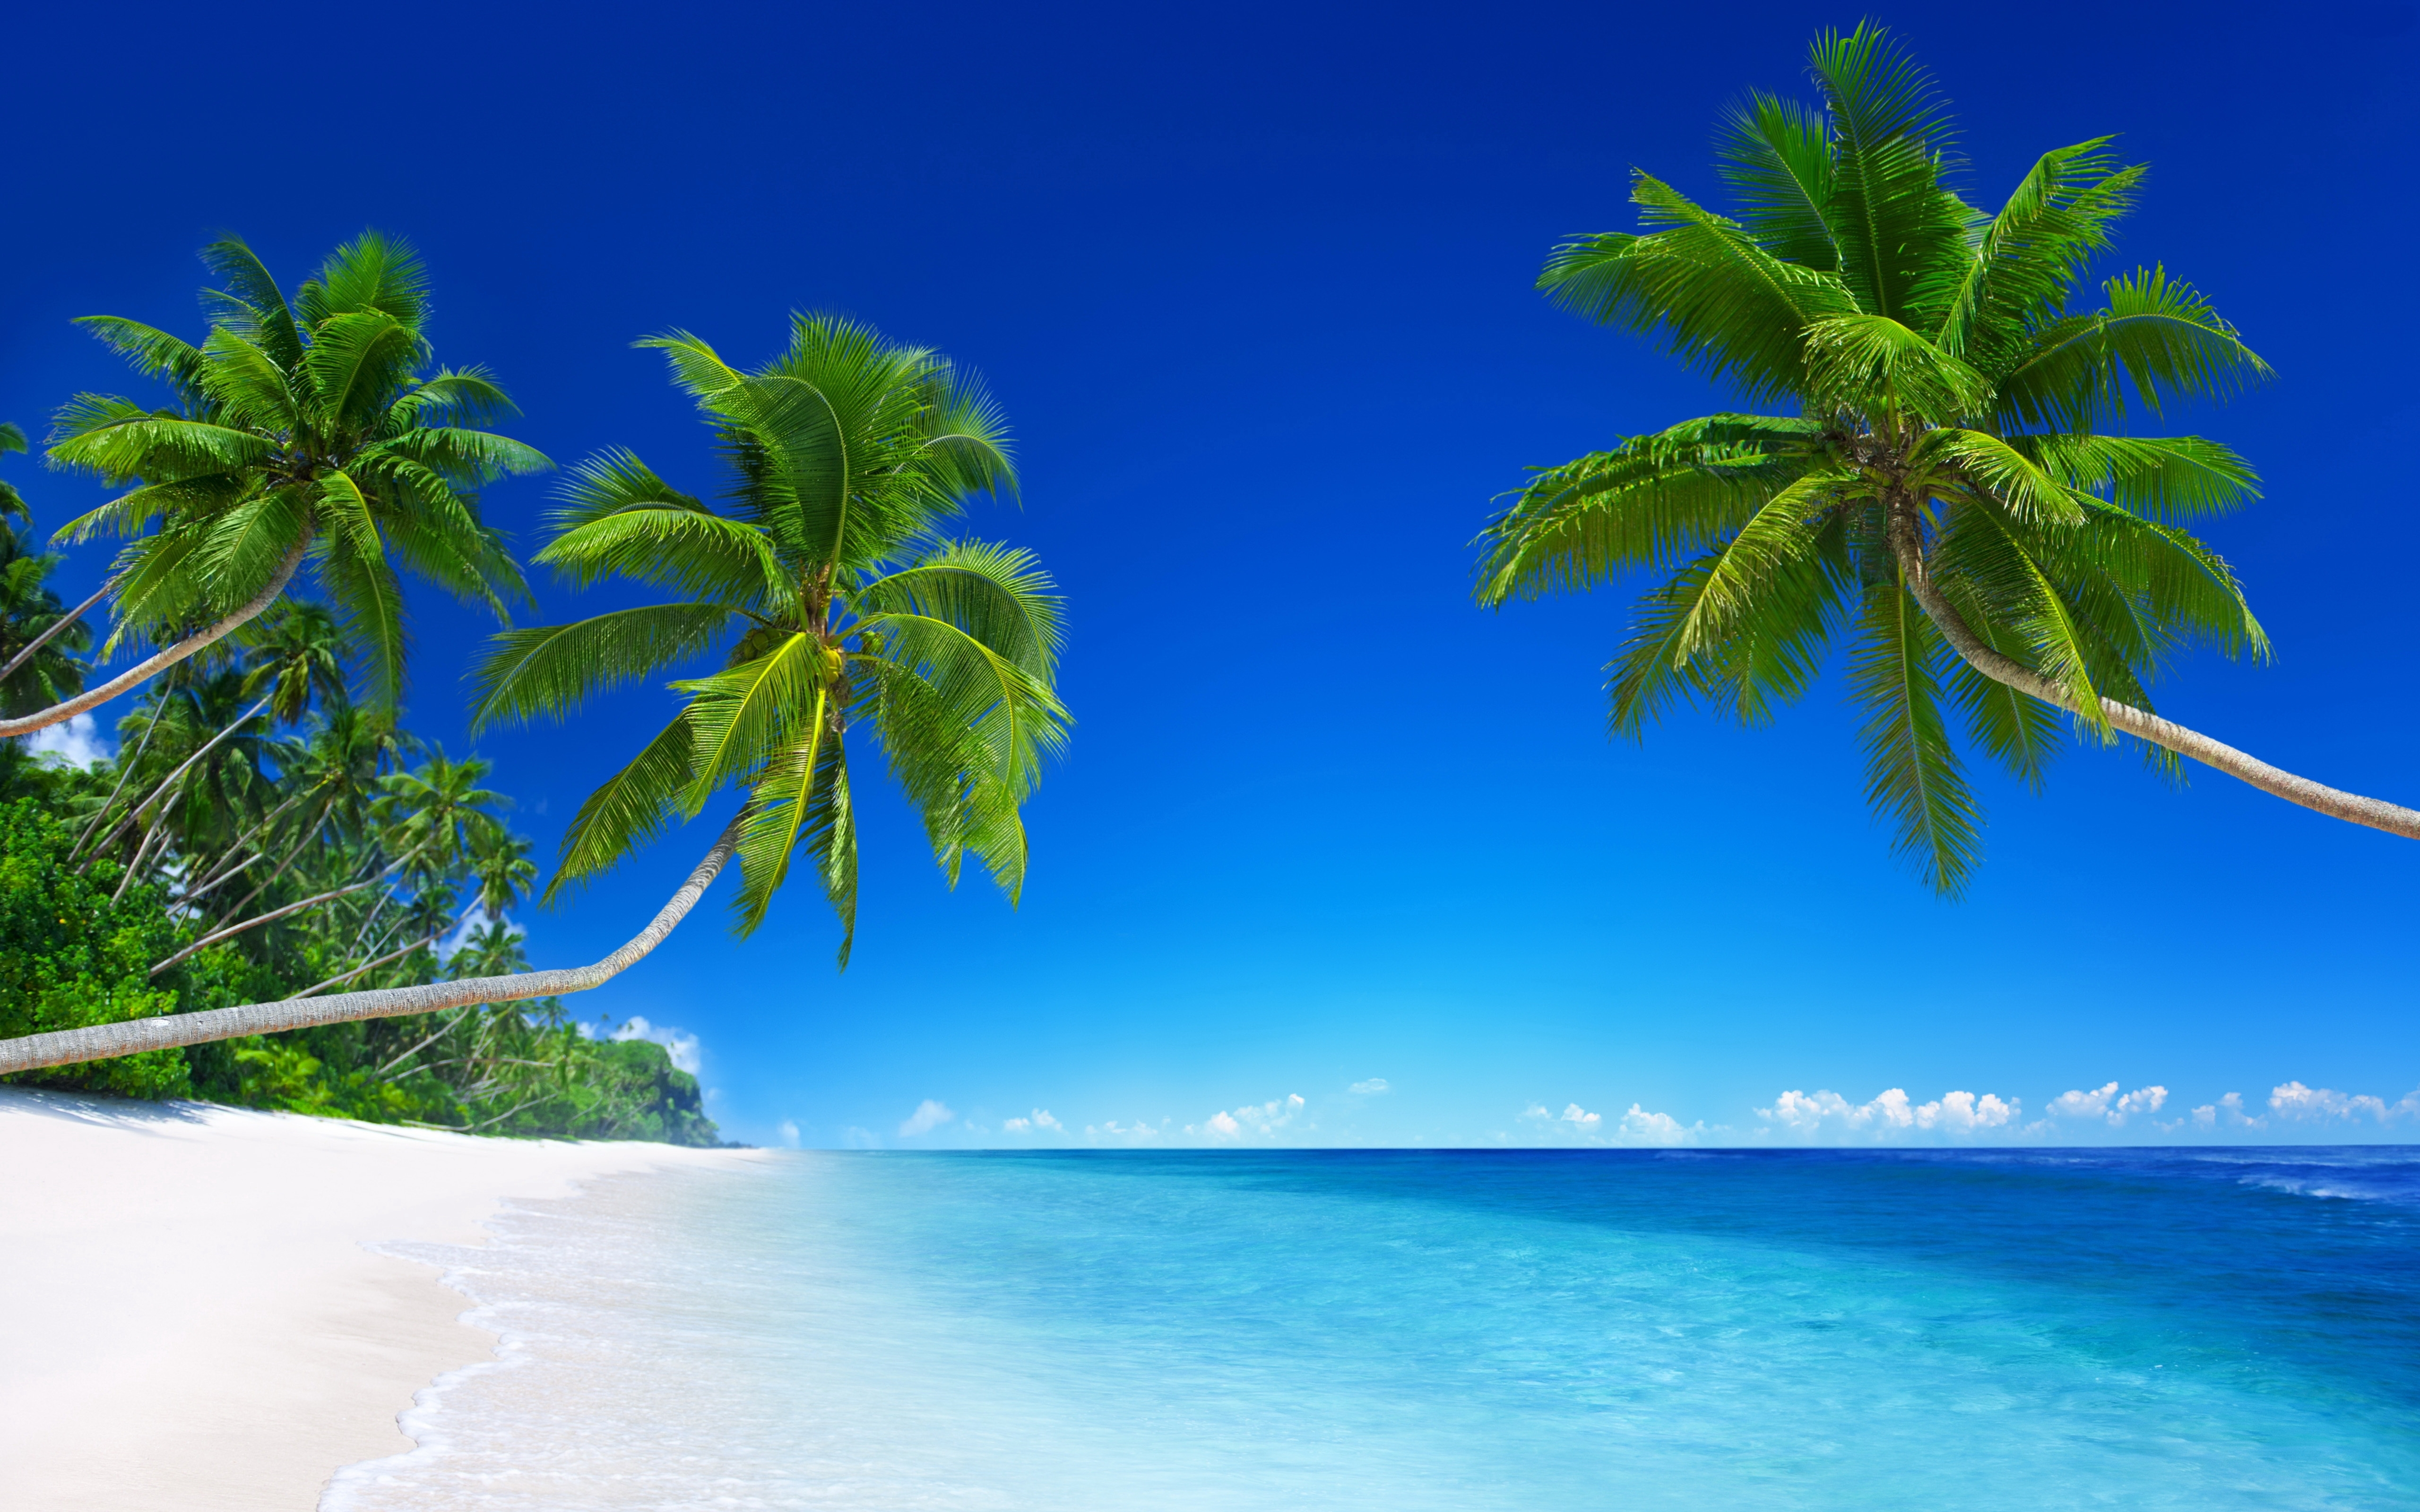 10 Best Tropical Beach Desktop Backgrounds FULL HD 1920×1080 For PC Background